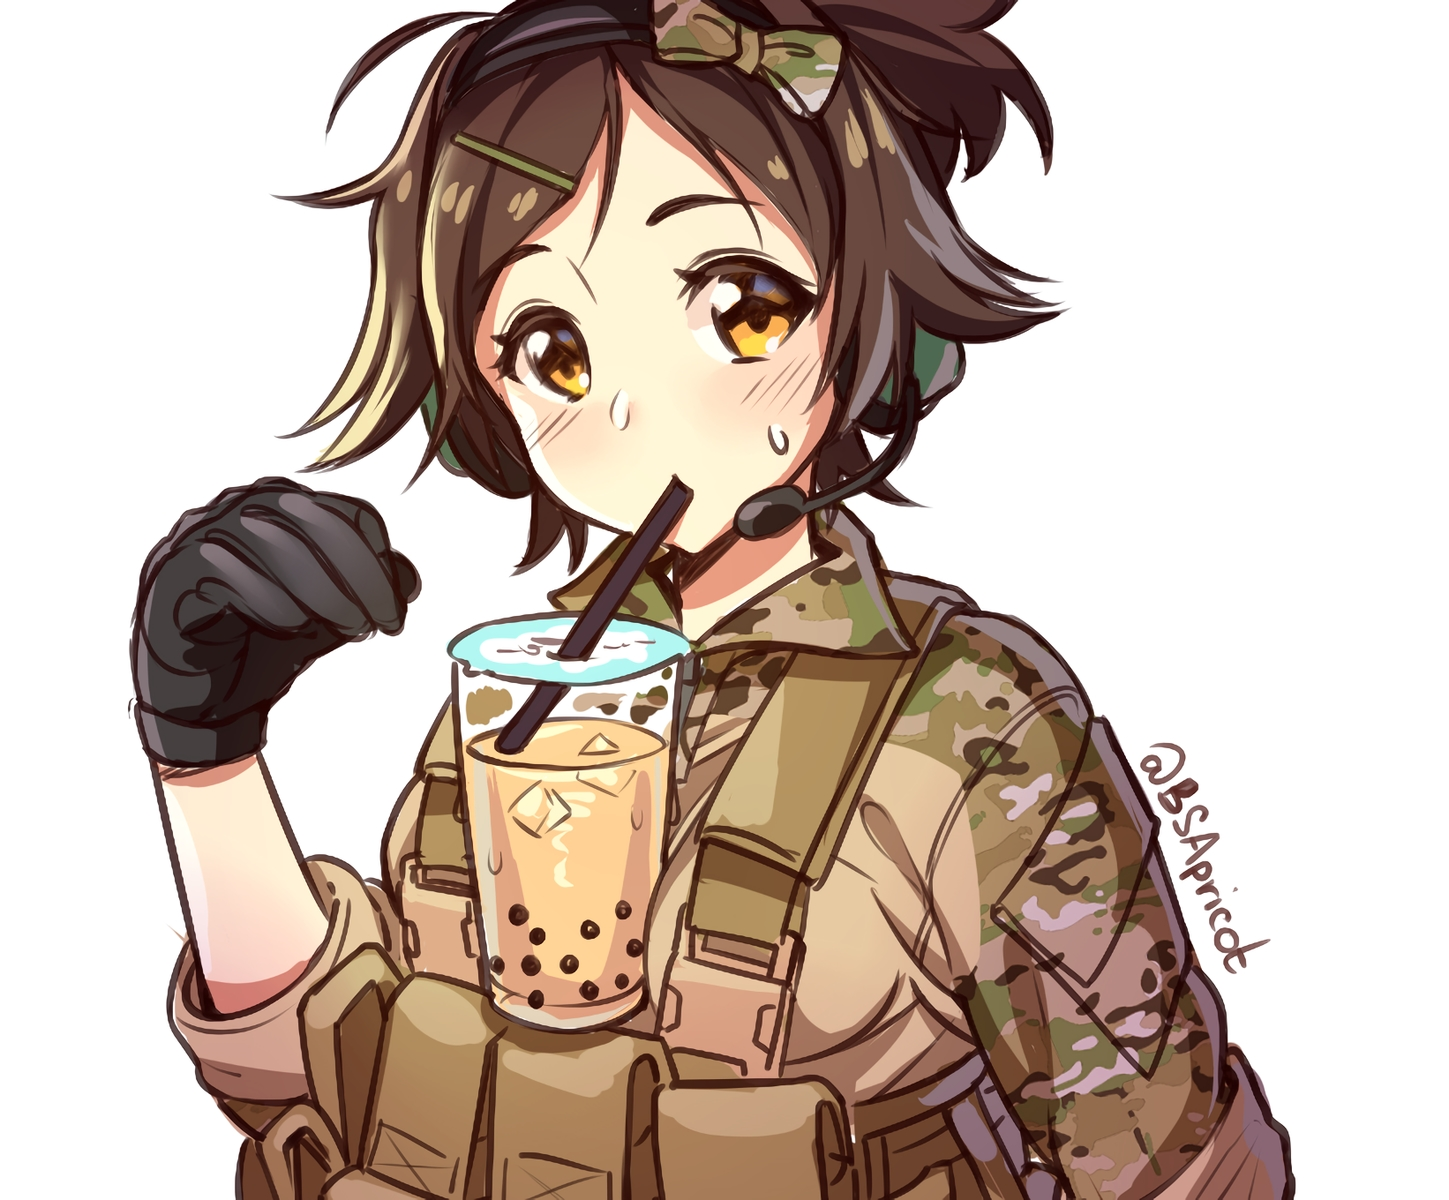 blush bow brown_hair cropped danielle_brindle drink gloves headphones microphone military original ponytail short_hair signed sketch uniform waifu2x white yellow_eyes